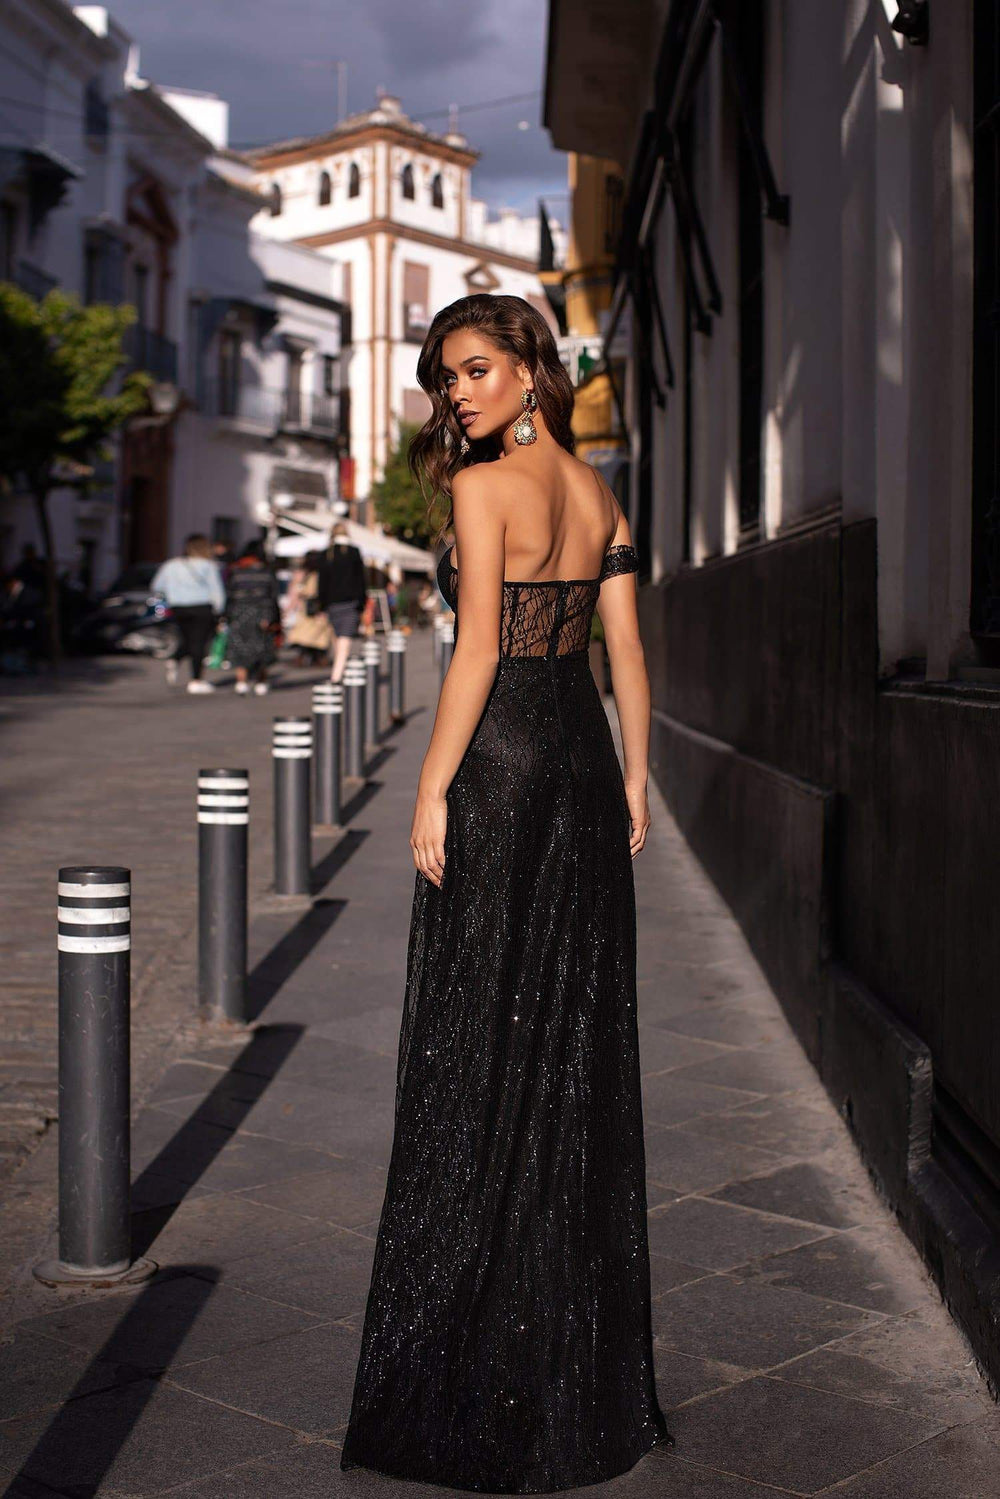 19a7cea868e7 Ayelet - Black Strapless Glitter Gown with Off-Shoulder Sleeve   Slit